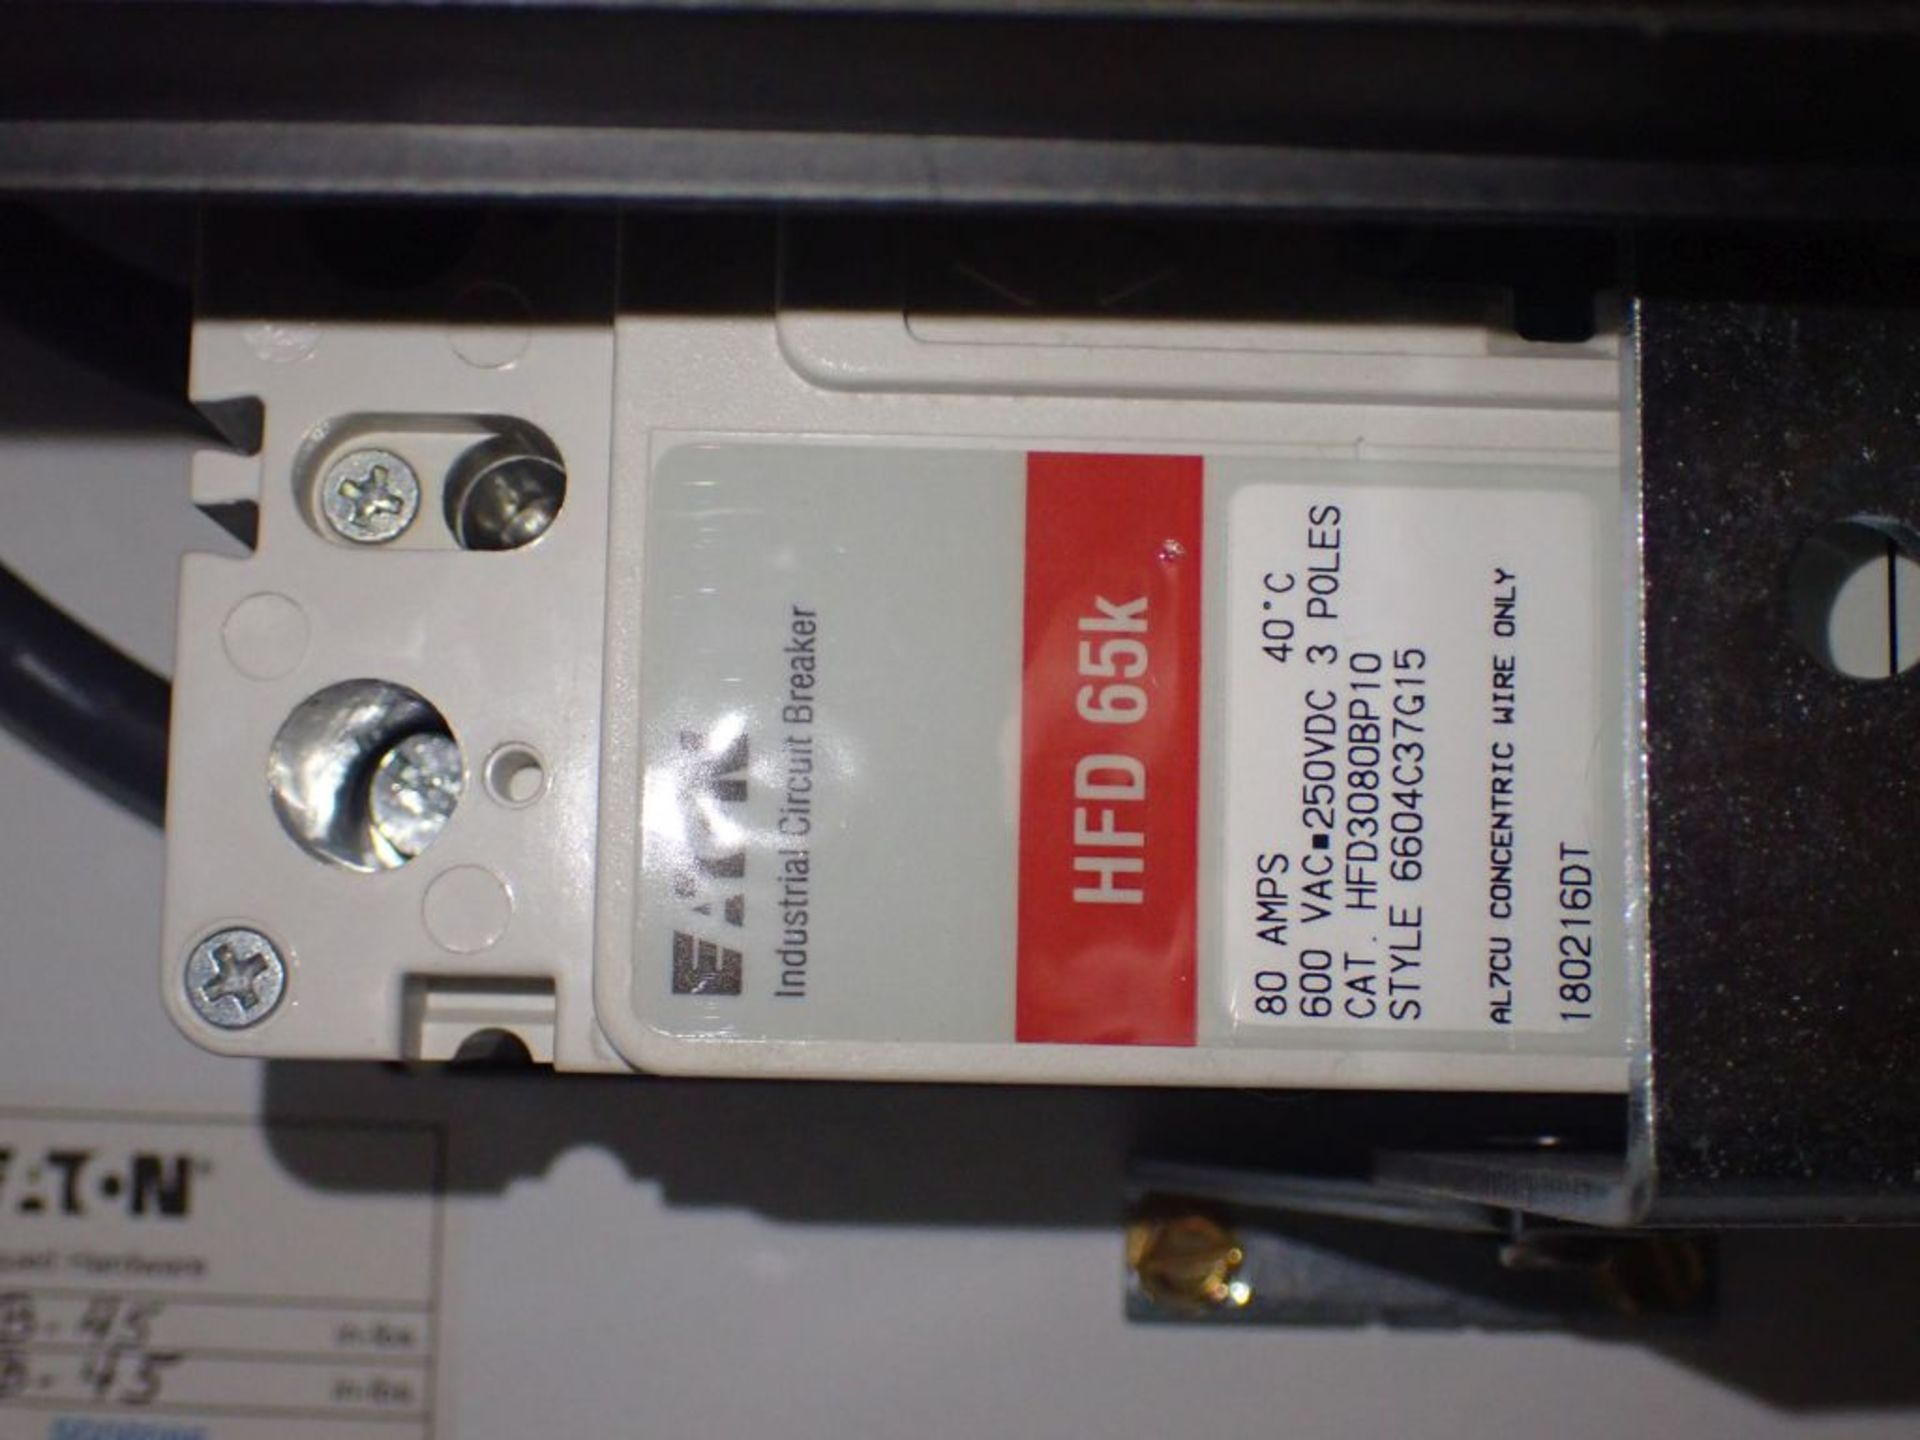 Eaton Freedom Flashgard Motor Control Center w/Components | (5) F206-15A-10HP; (4) F206-30A-10HP; ( - Image 84 of 84